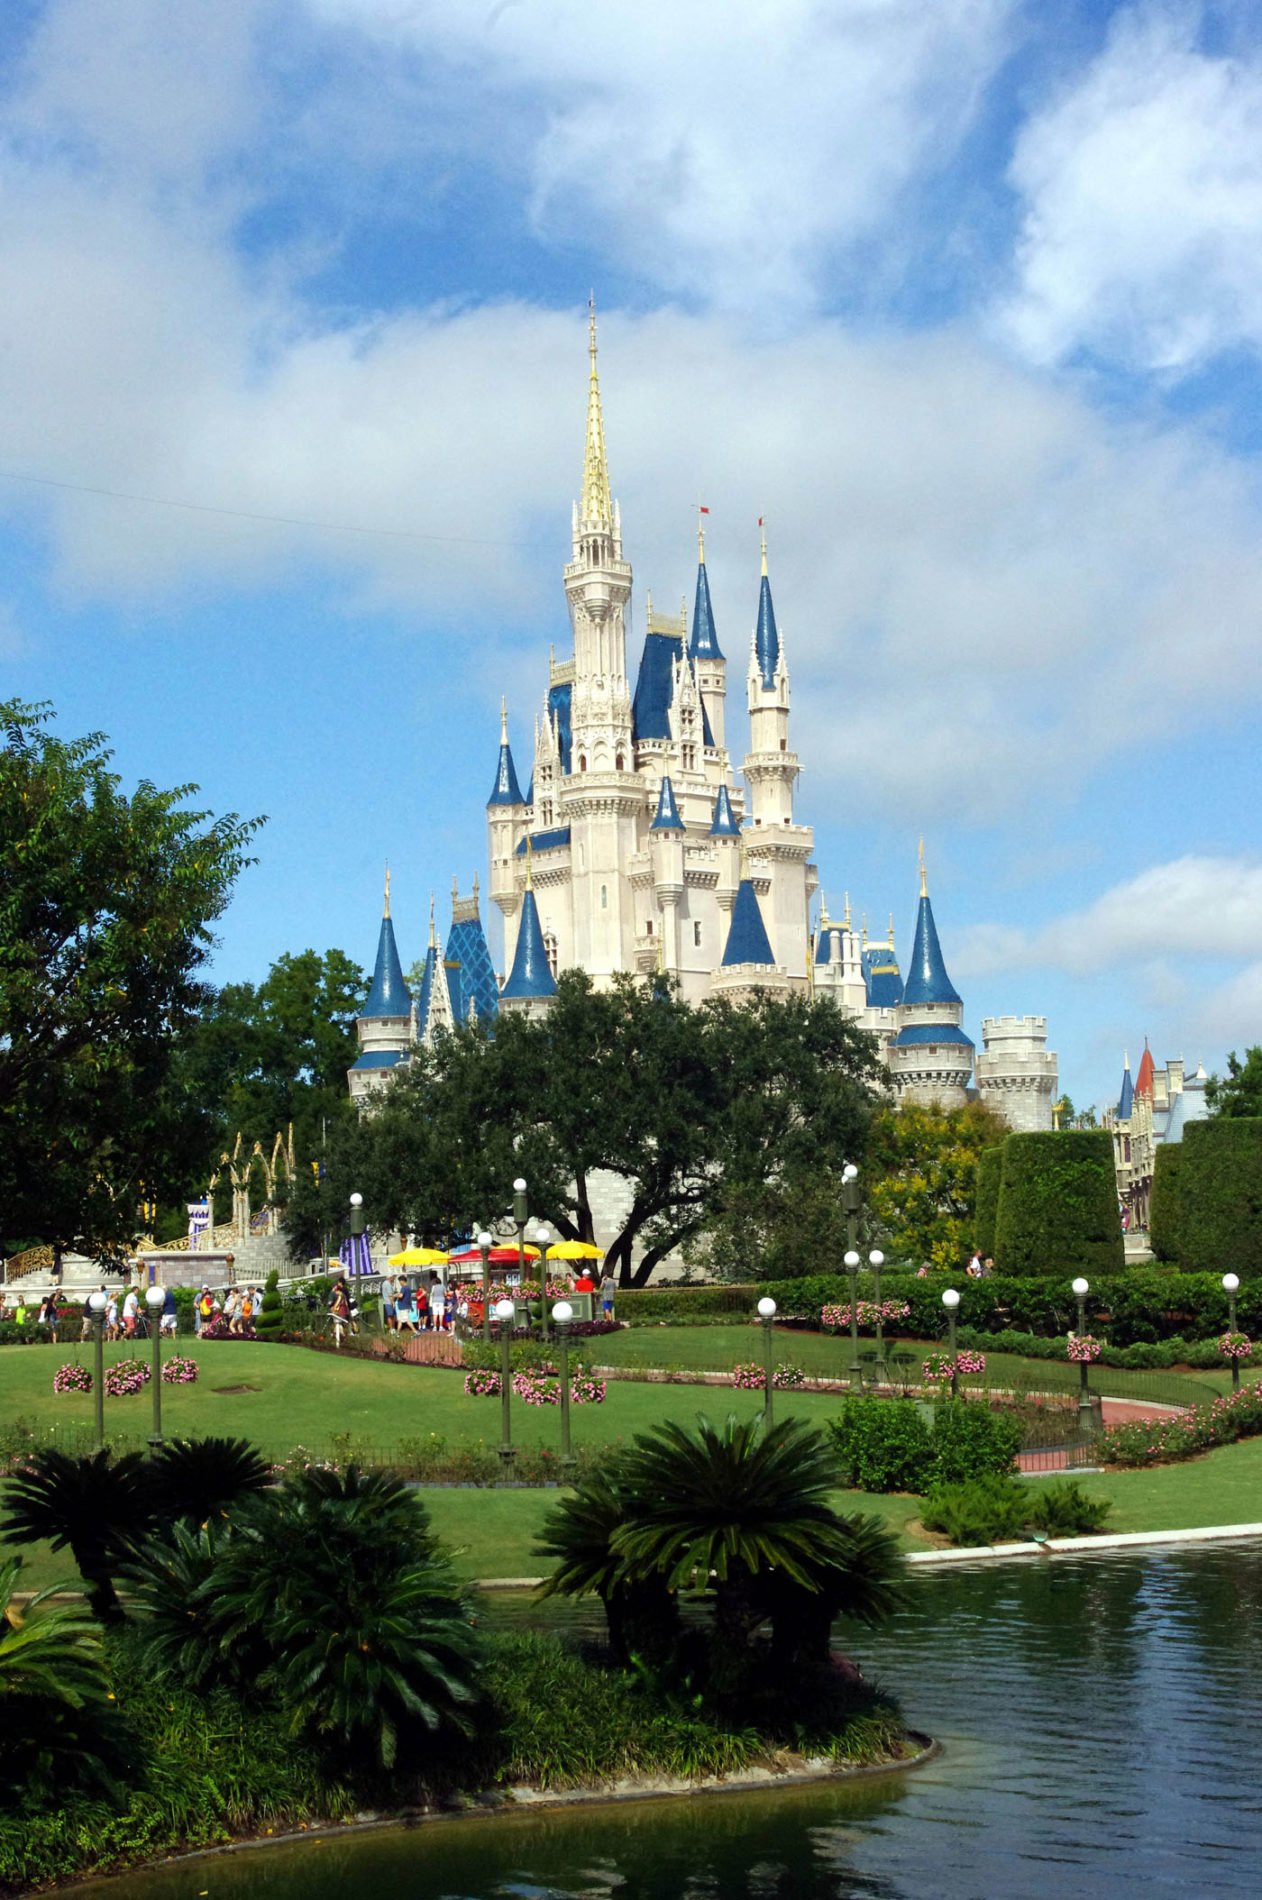 21 Things To Pack For A Walt Disney World Vacation